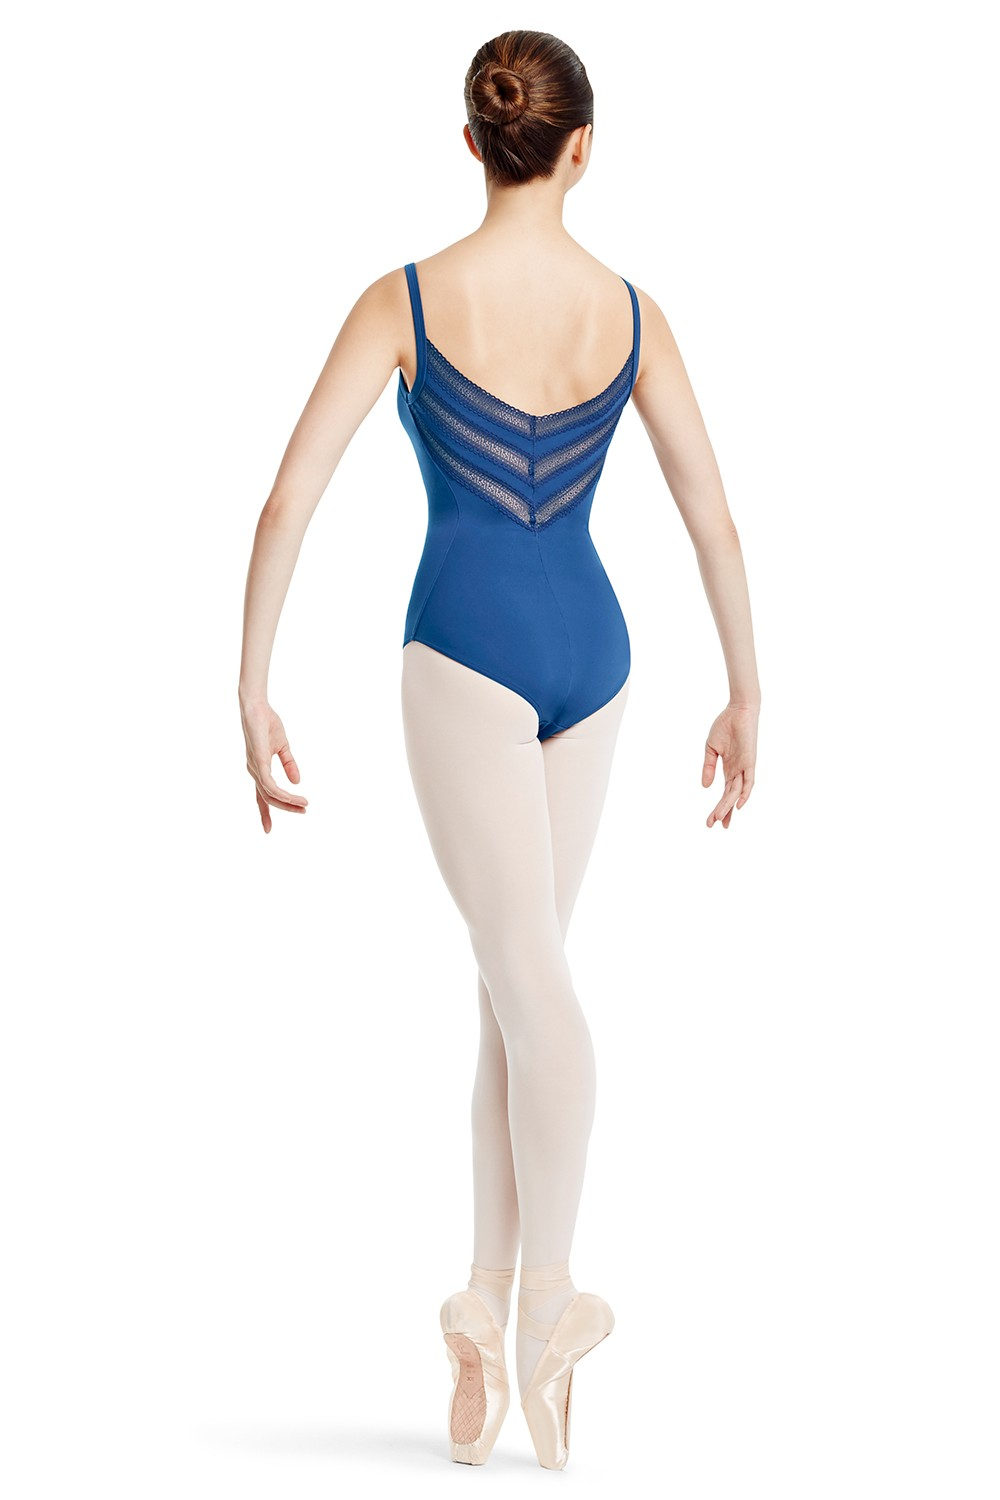 Chevron Back Camisole Leotard Women's Dance Leotards